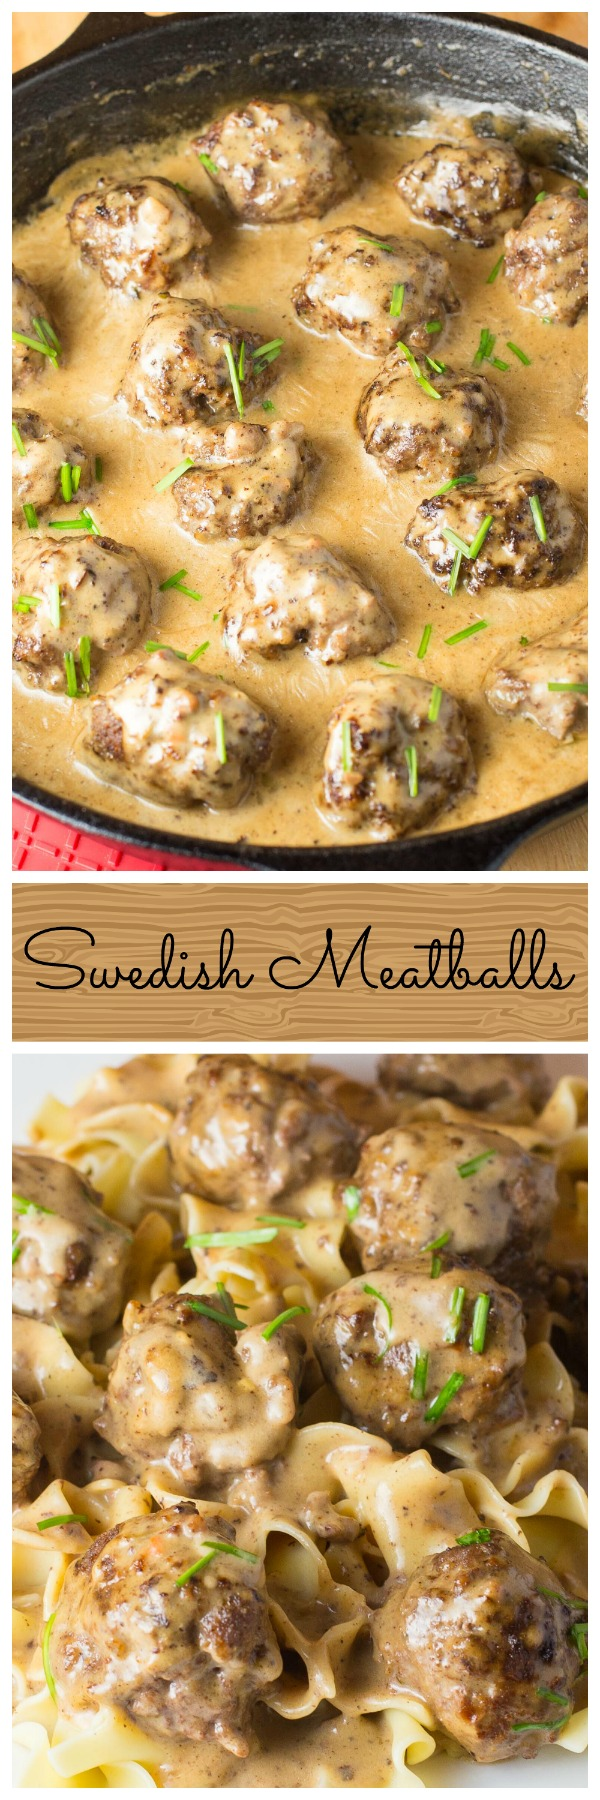 Amazing Swedish Meatballs recipe, even better than Ikea! Easy to make meatballs full of flavour, with the most amazing creamy gravy sauce. via @artandthekitch